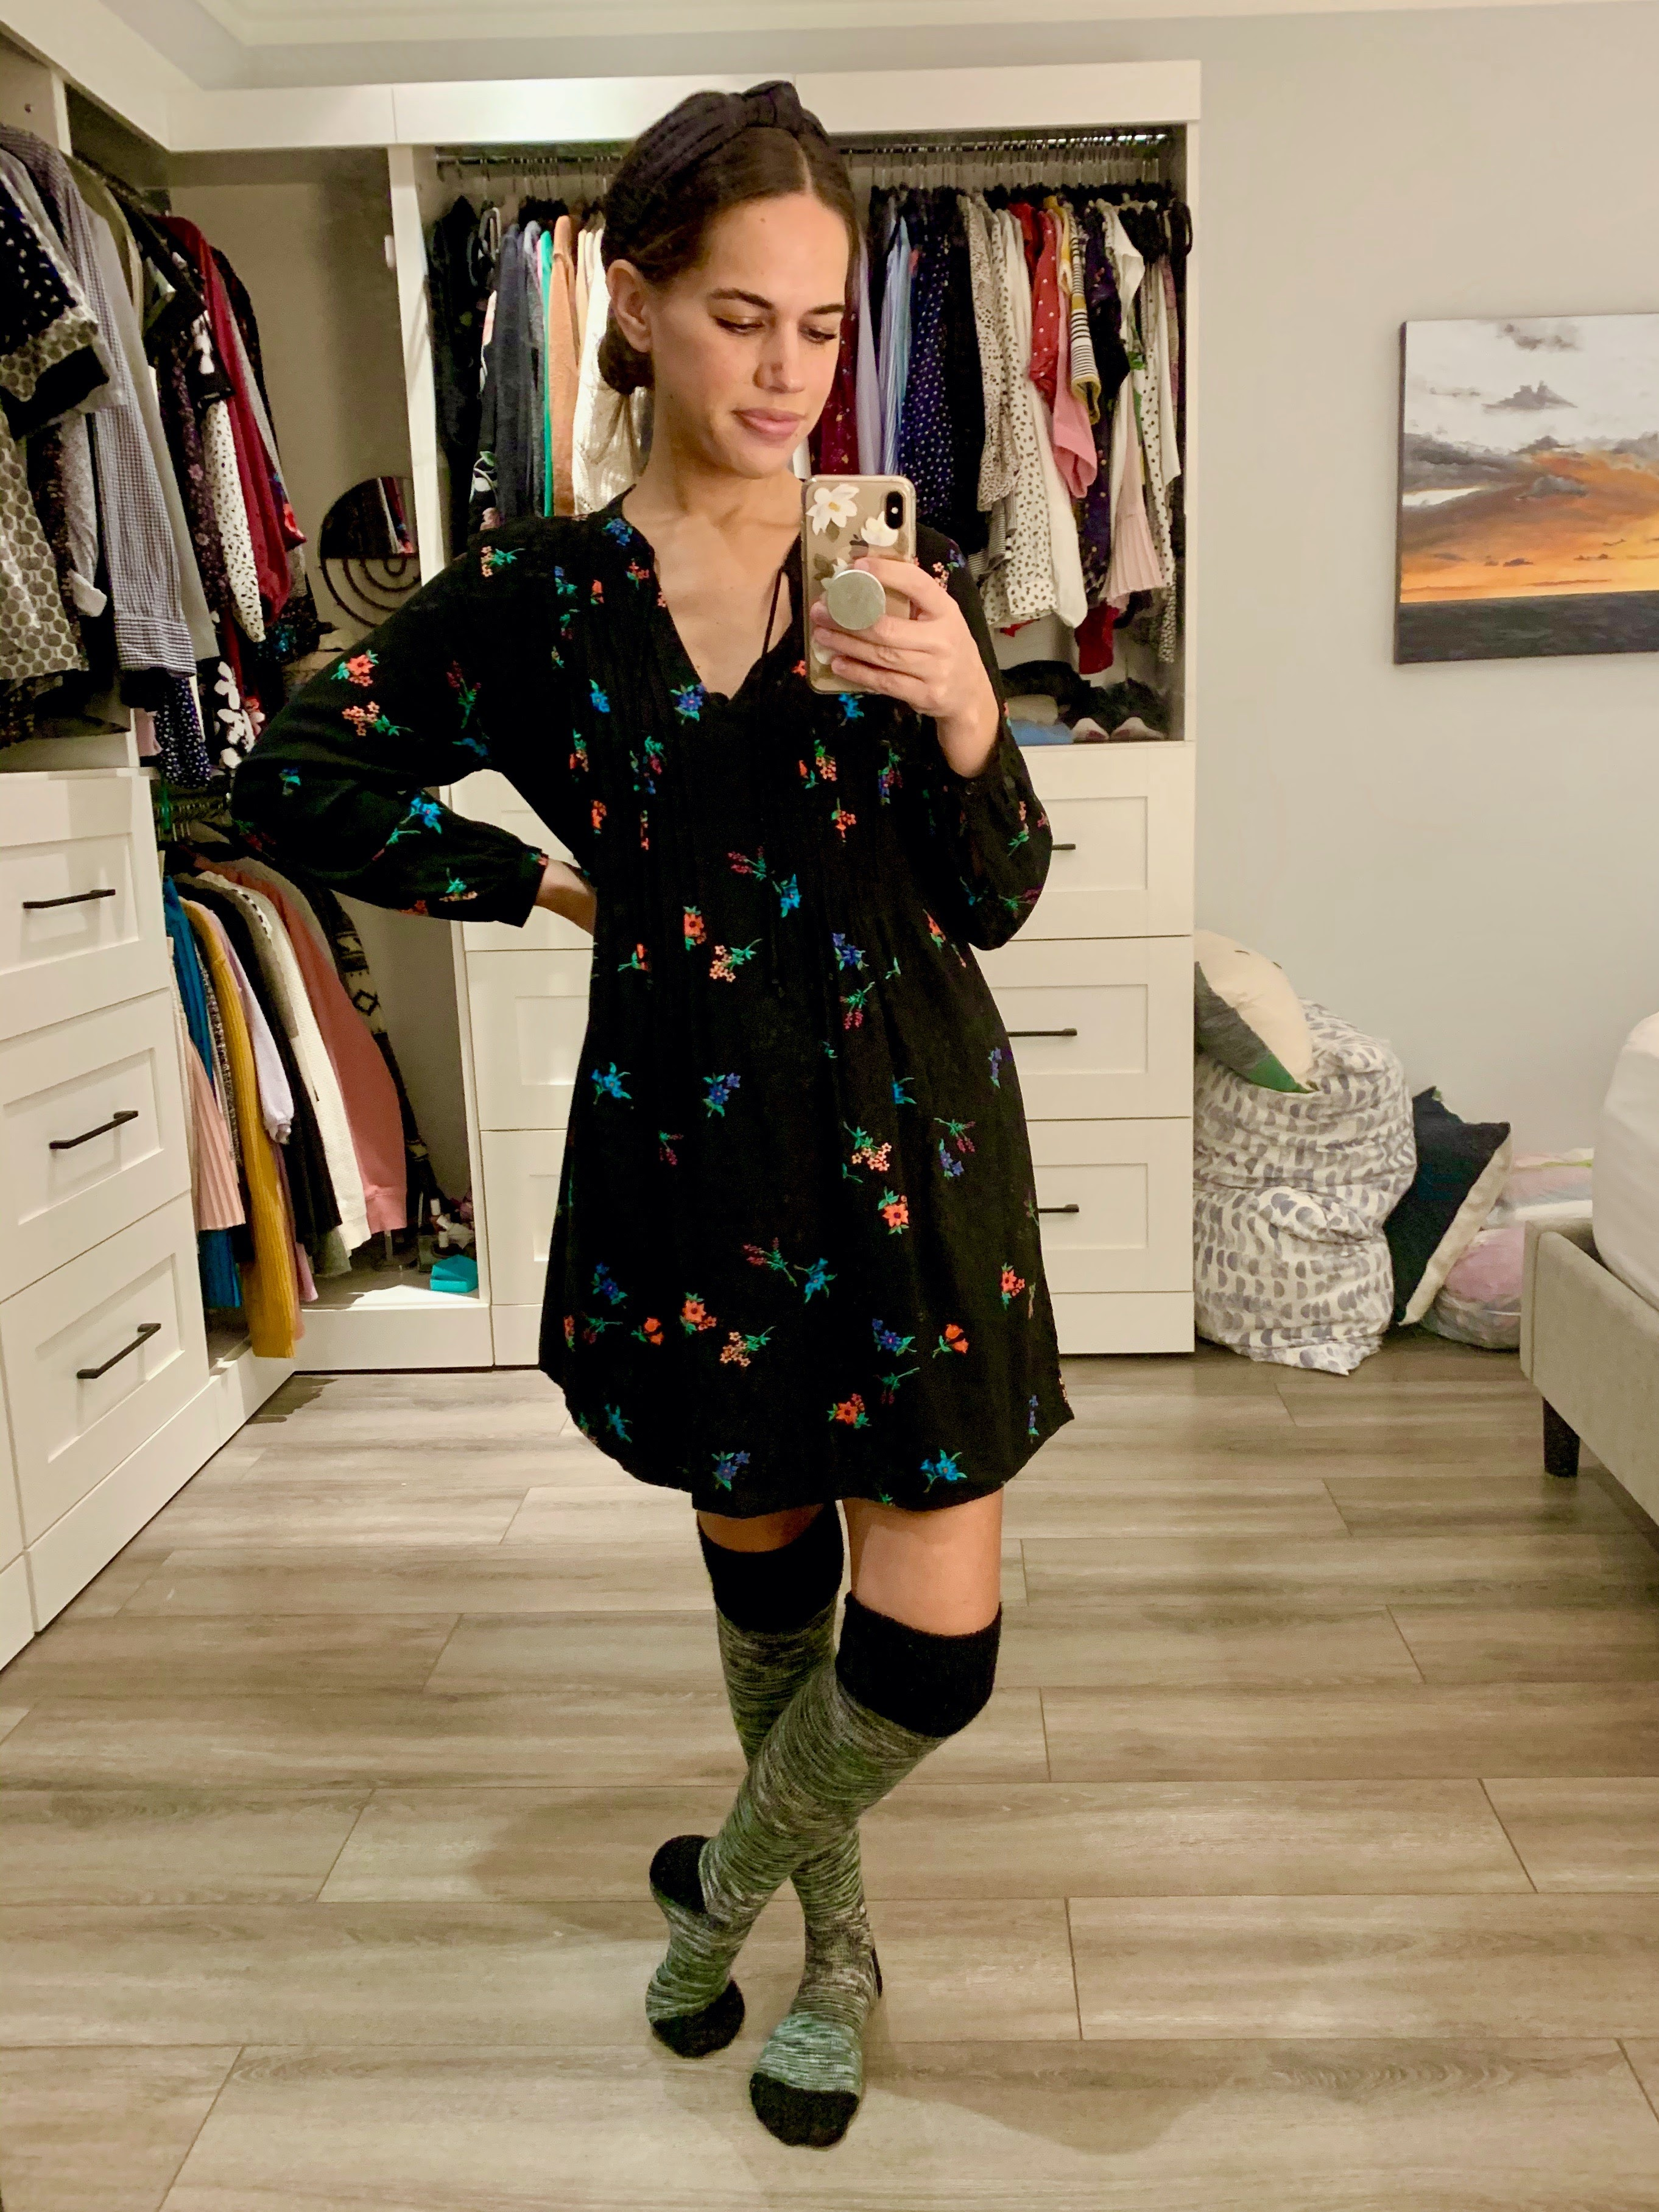 Jules in Flats - (WFH Outfit) Swing Dress with Knee High Socks (Business Casual Workwear on a Budget)